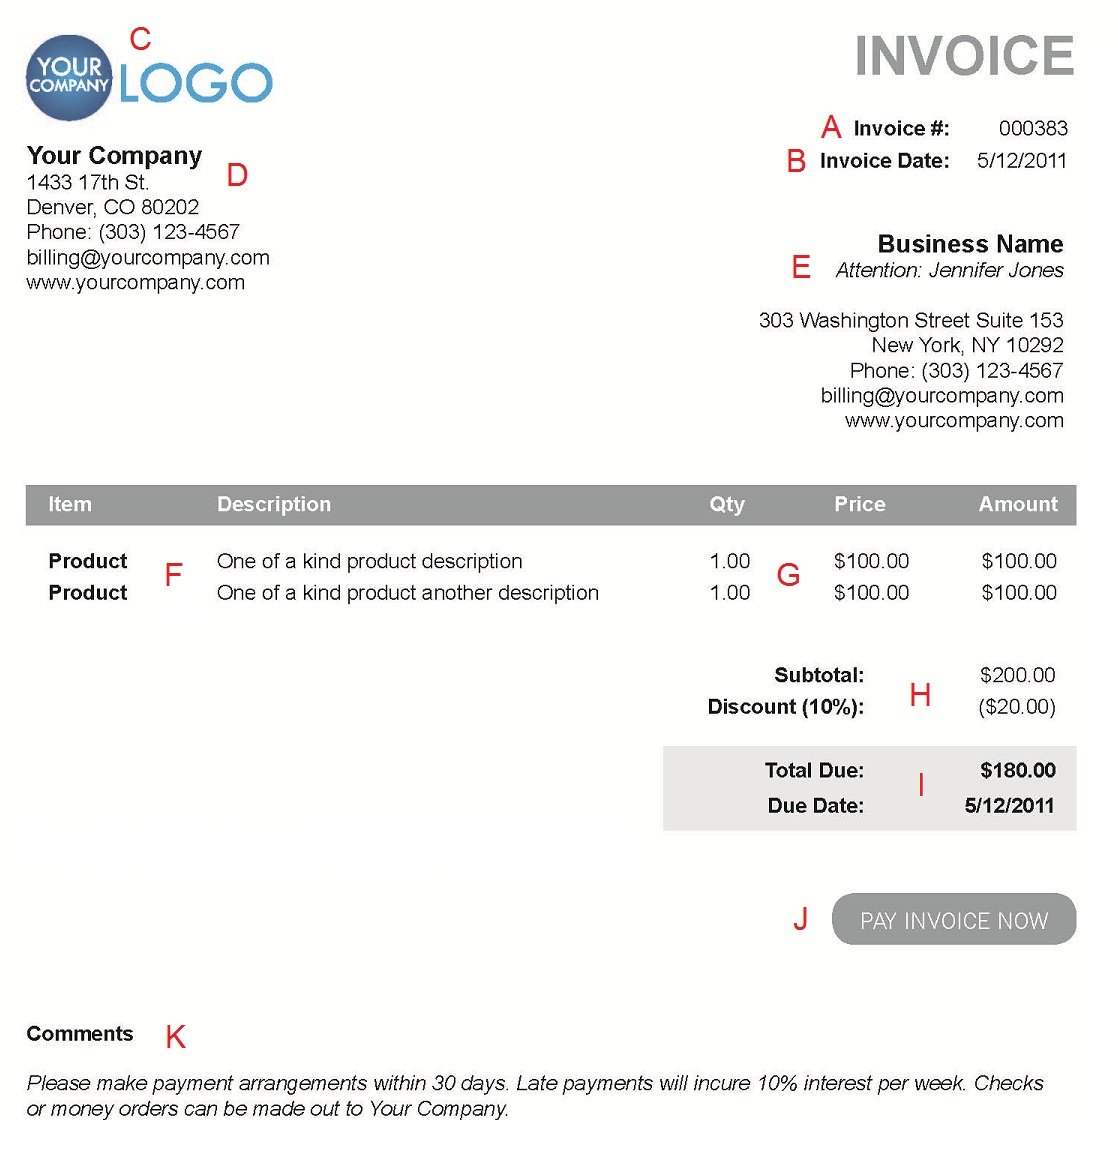 Opposenewapstandardsus  Seductive The  Different Sections Of An Electronic Payment Invoice With Interesting A  With Endearing Invoice Department Also Australia Tax Invoice In Addition Google Invoices Templates Free And Overdue Invoice Letter Sample As Well As Rental Invoice Template Free Additionally Cost Invoice From Paysimplecom With Opposenewapstandardsus  Interesting The  Different Sections Of An Electronic Payment Invoice With Endearing A  And Seductive Invoice Department Also Australia Tax Invoice In Addition Google Invoices Templates Free From Paysimplecom